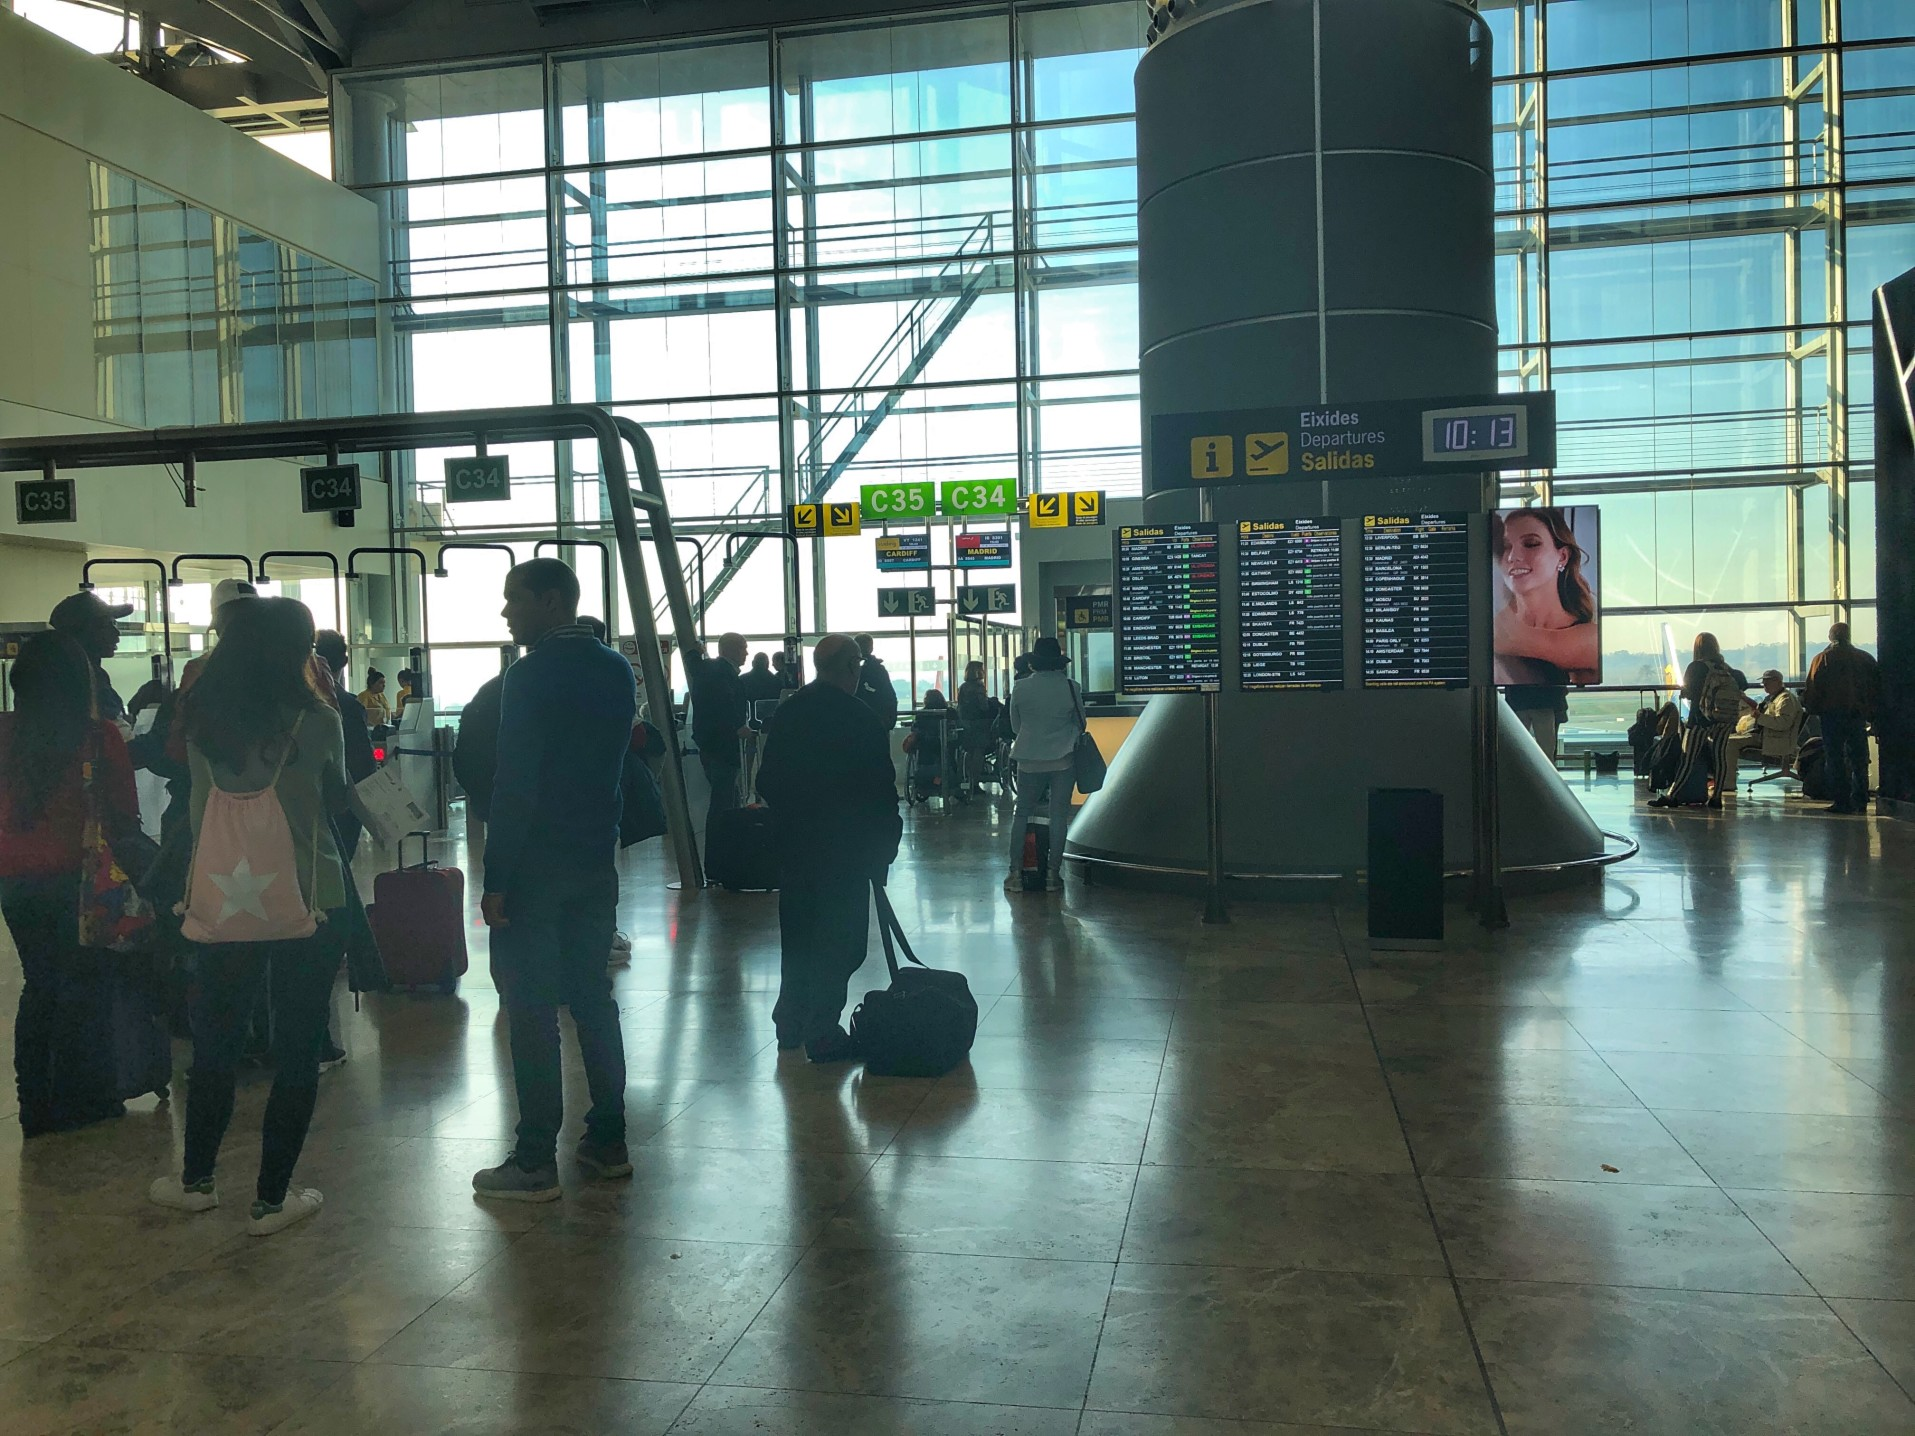 passengers-in-the-departure-lounge-area-of-el-altet-airport-waiting-for-gate-information-to-come-up_t20_VLQRo8 (1)